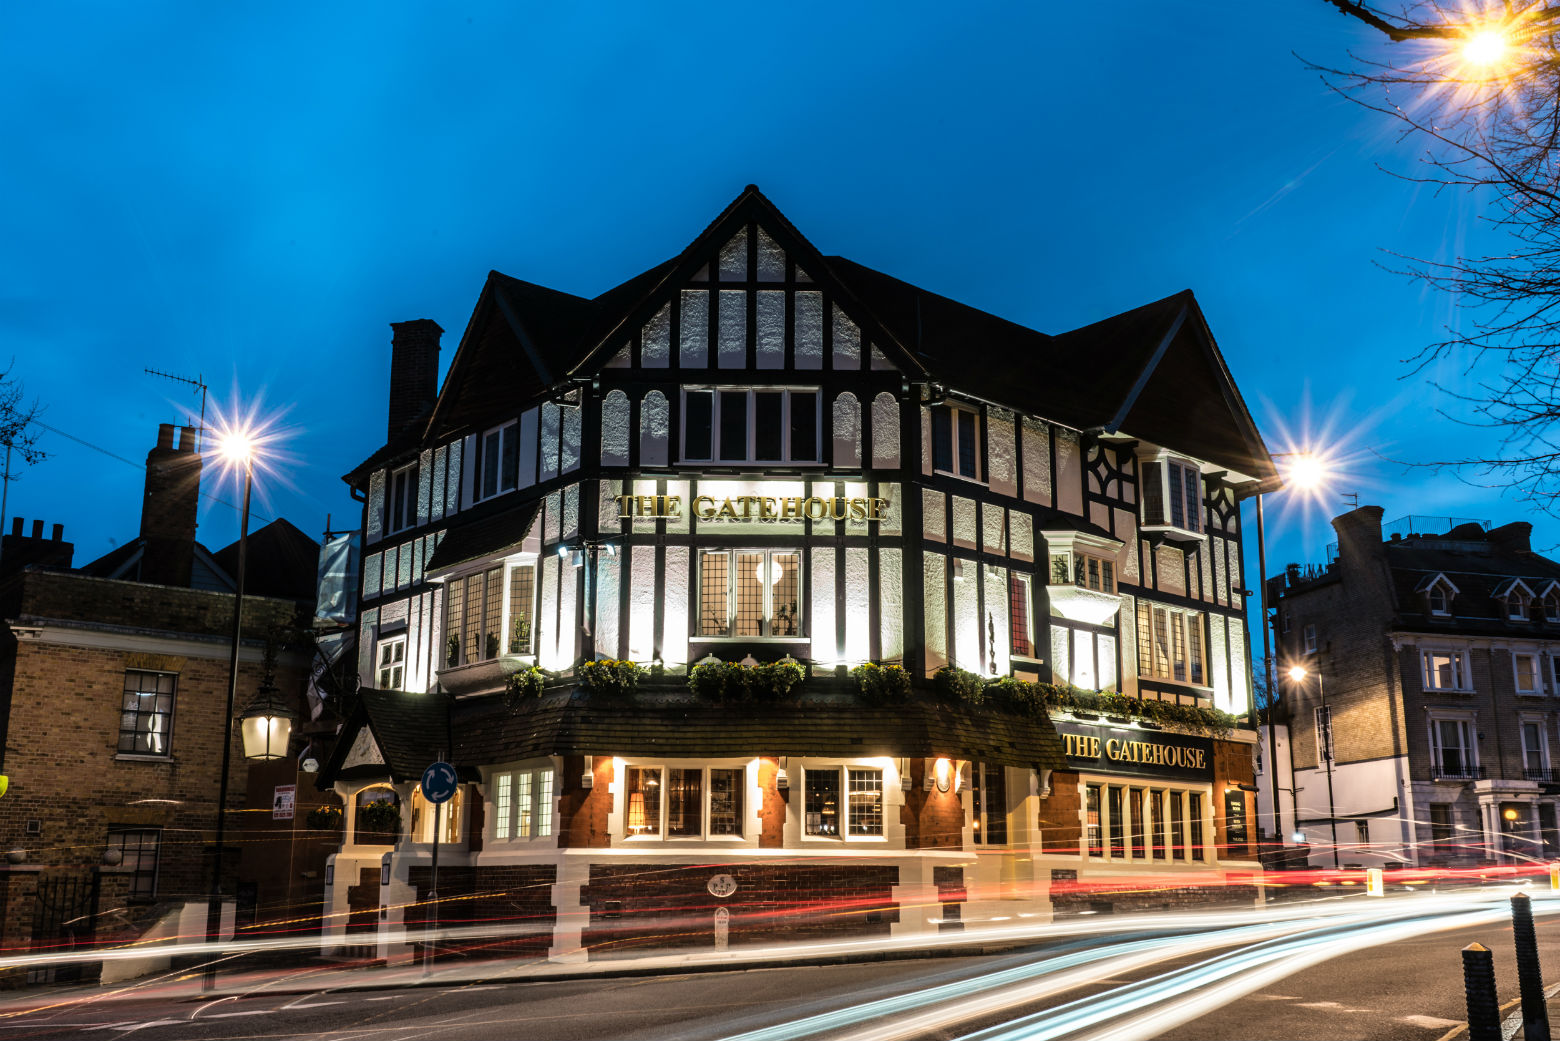 Gatehouse is now a proper food destination (as well as a theatre). Photo: PR